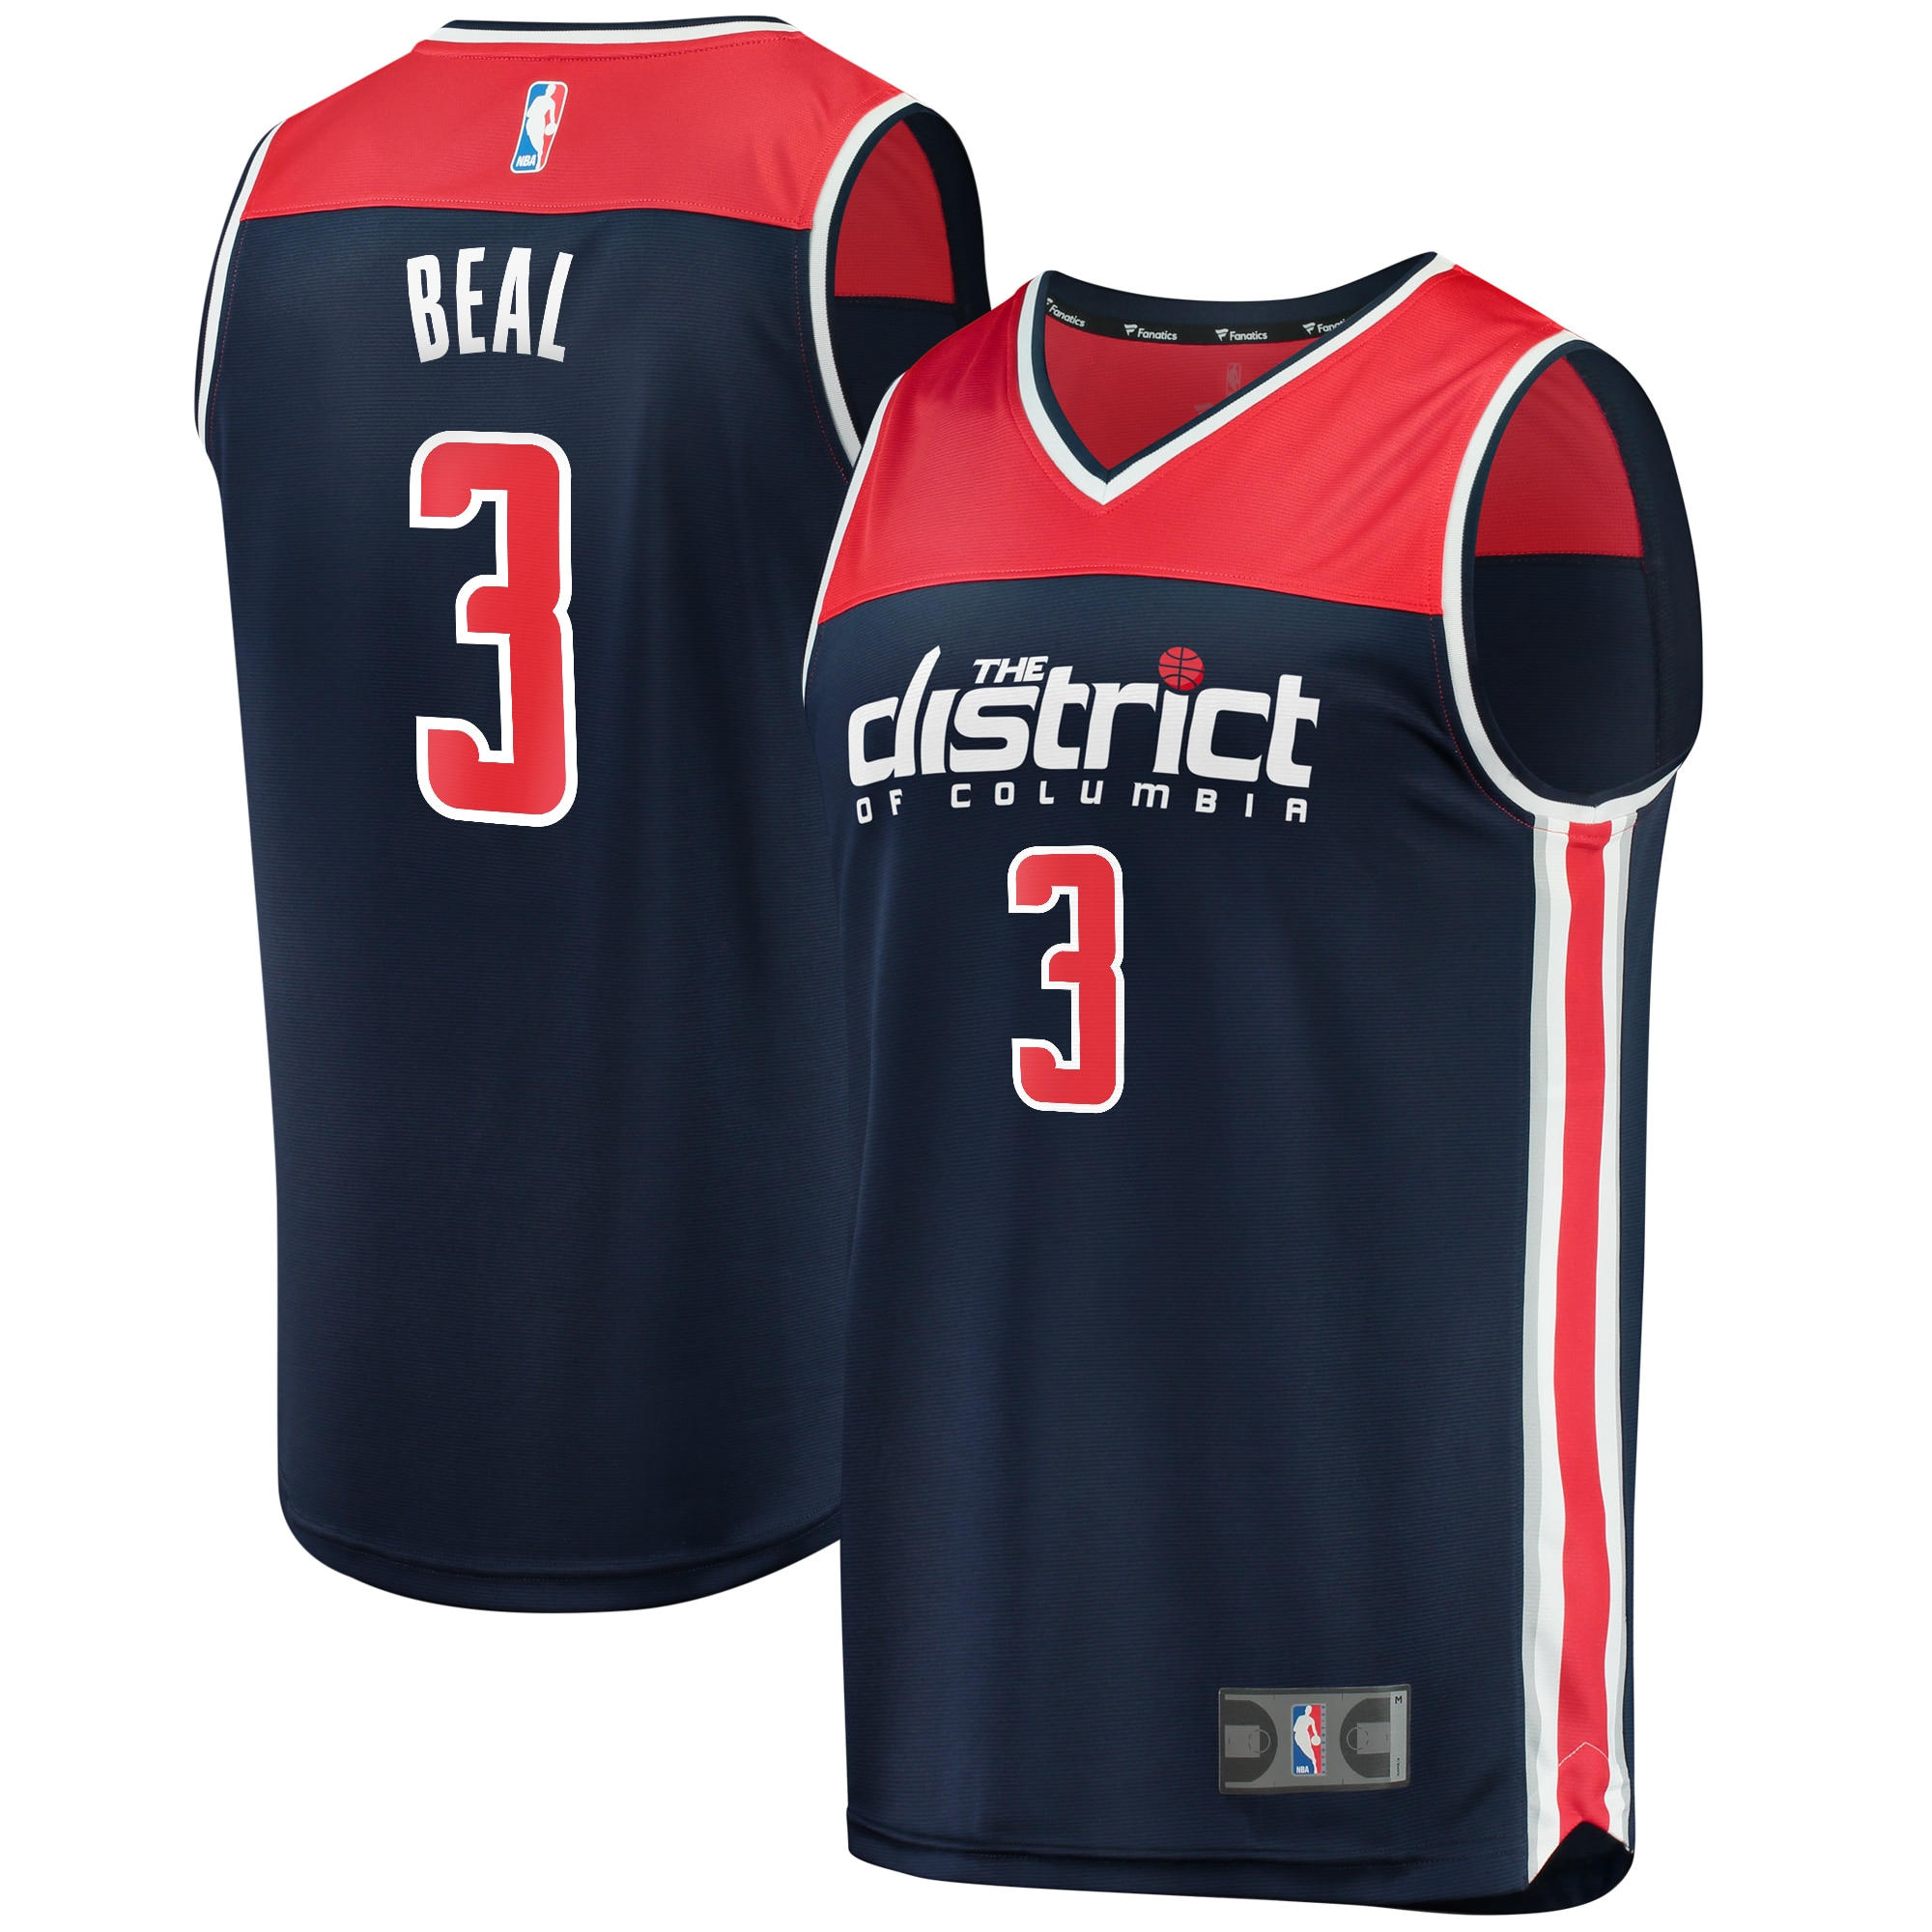 Bradley Beal Washington Wizards Fanatics Branded Fast Break Replica Jersey - Statement Edition - Navy